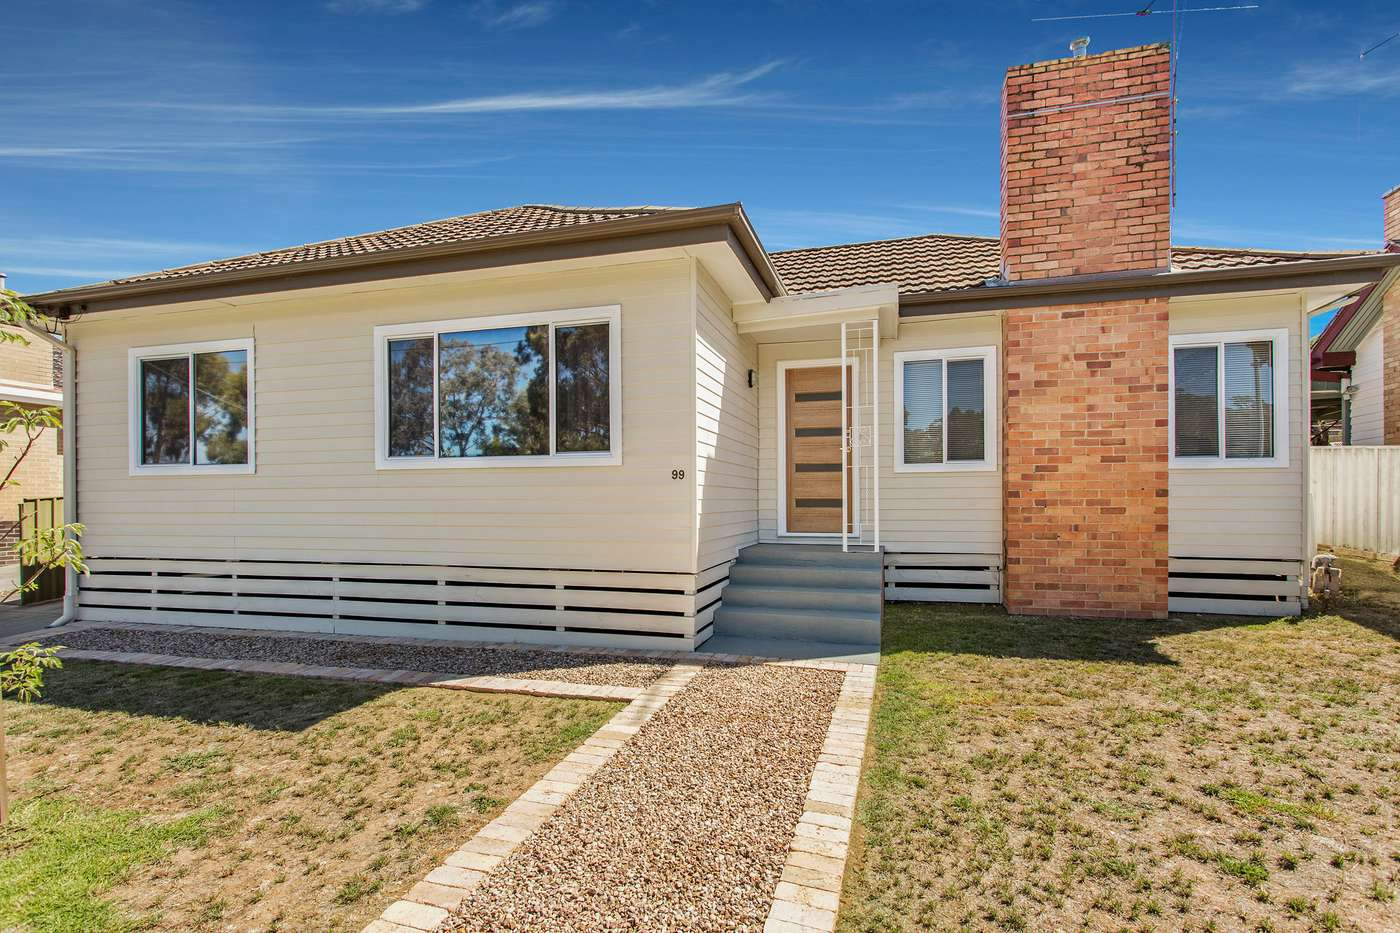 Main view of Homely house listing, 99 Condon Street, Kennington, VIC 3550